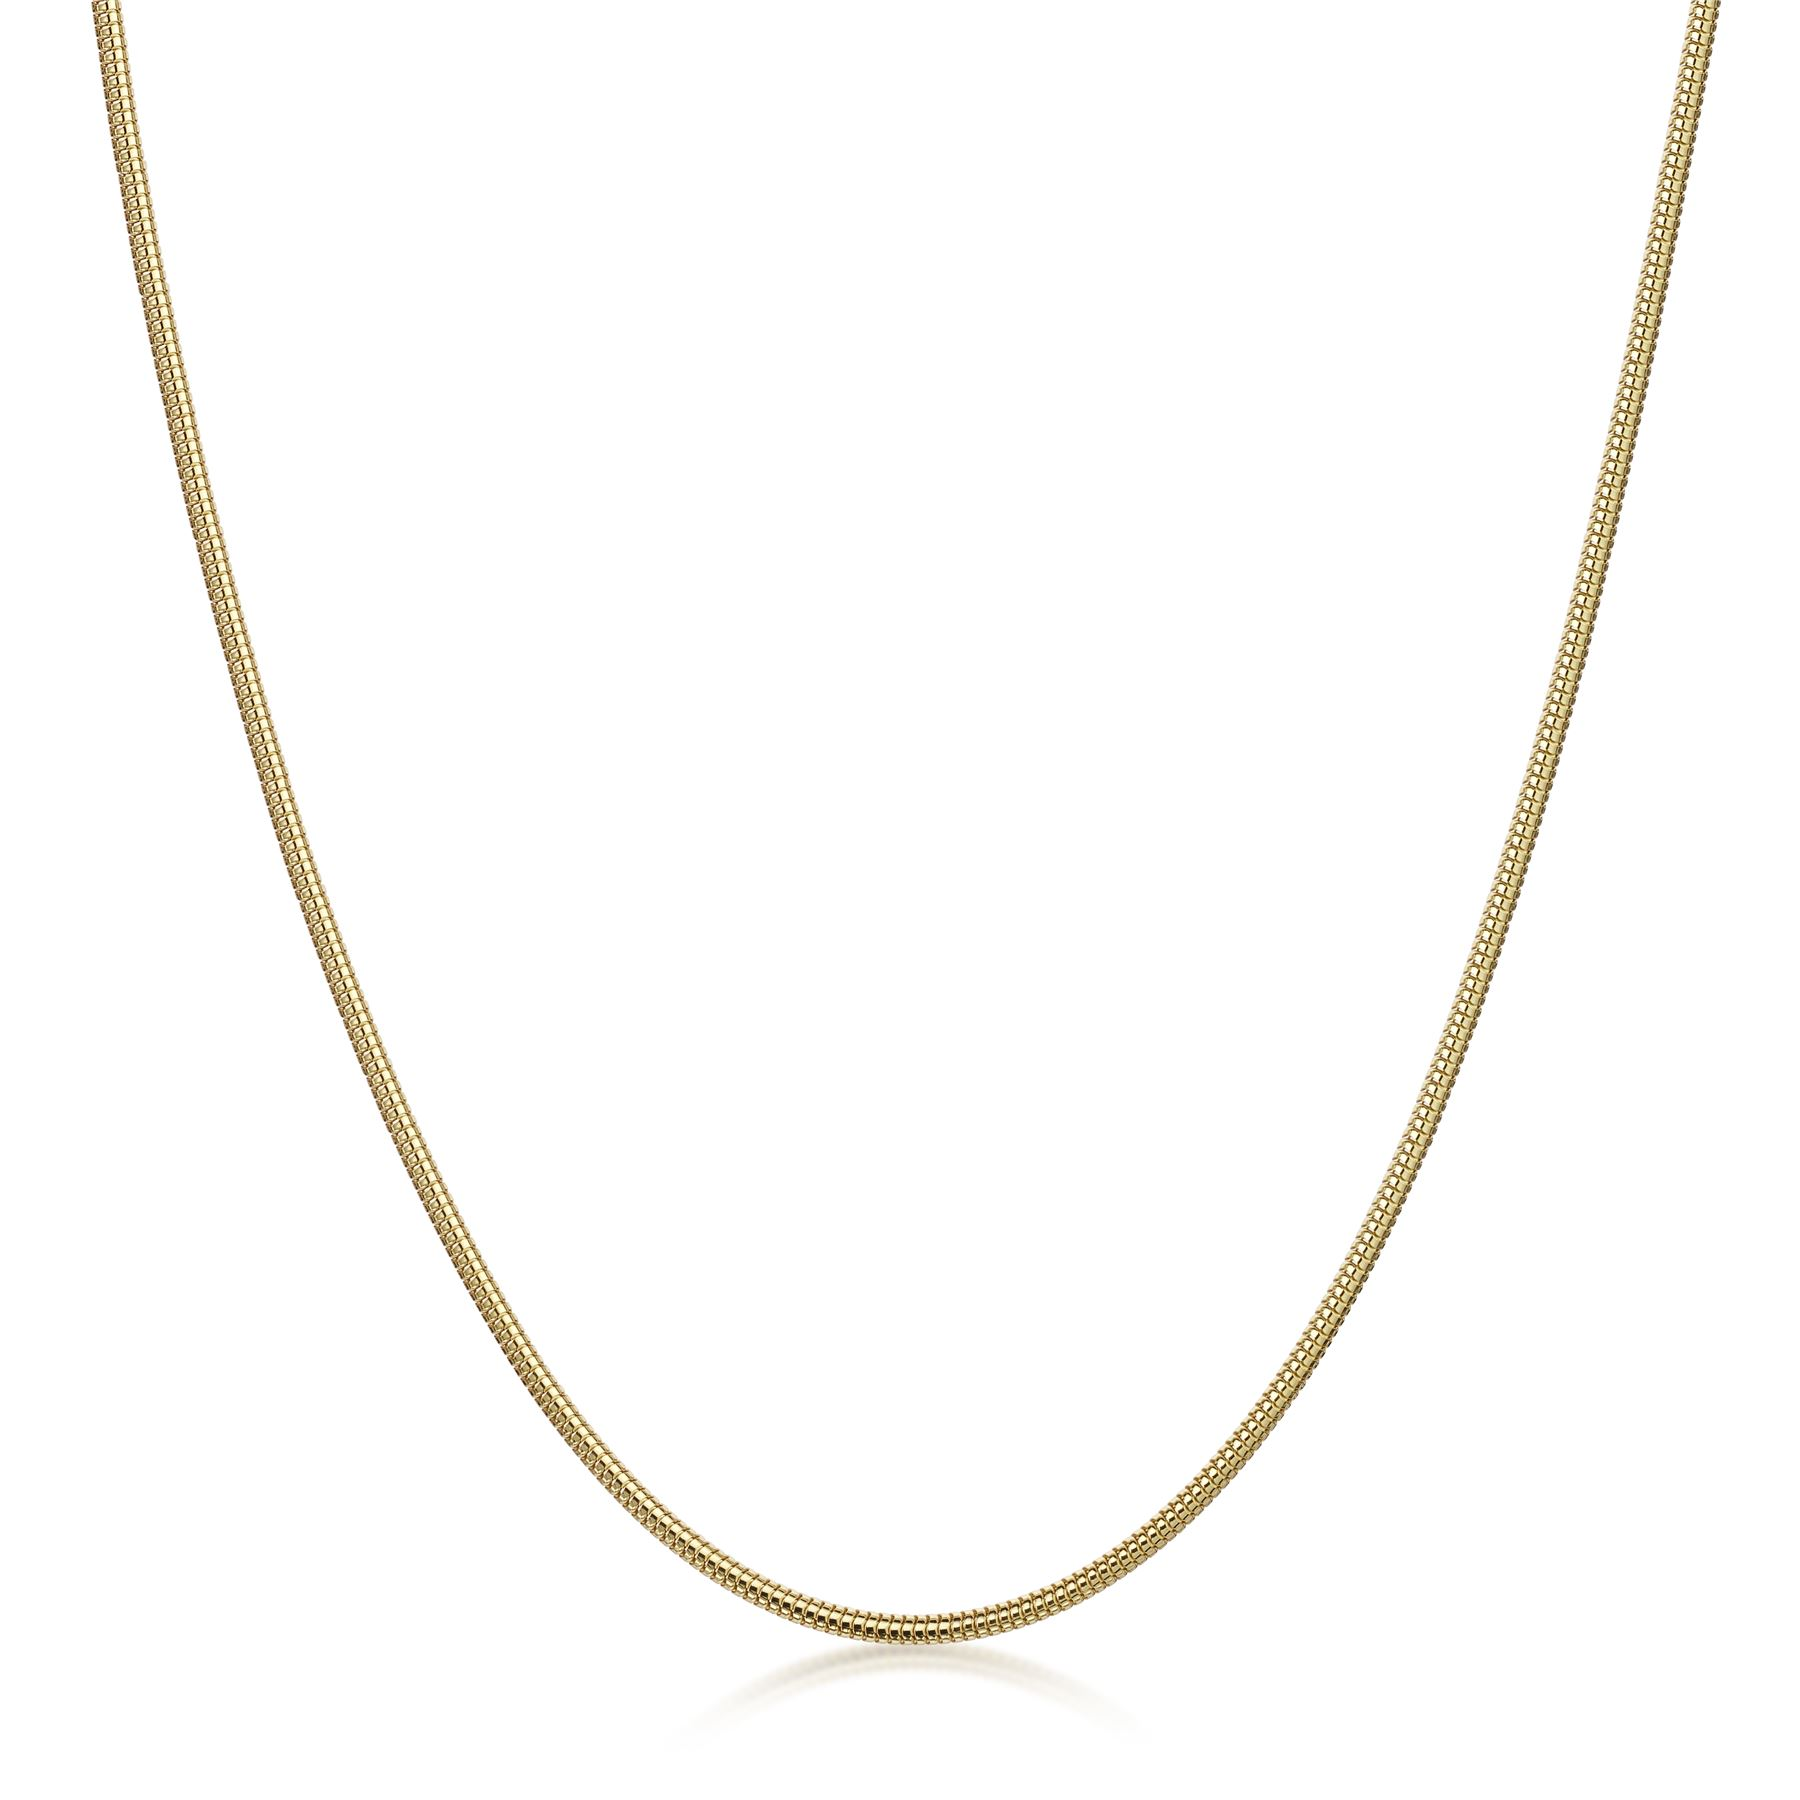 Amberta-Genuine-Gold-Plated-on-Real-925-Sterling-Silver-Necklace-Chain-Italy miniatura 19